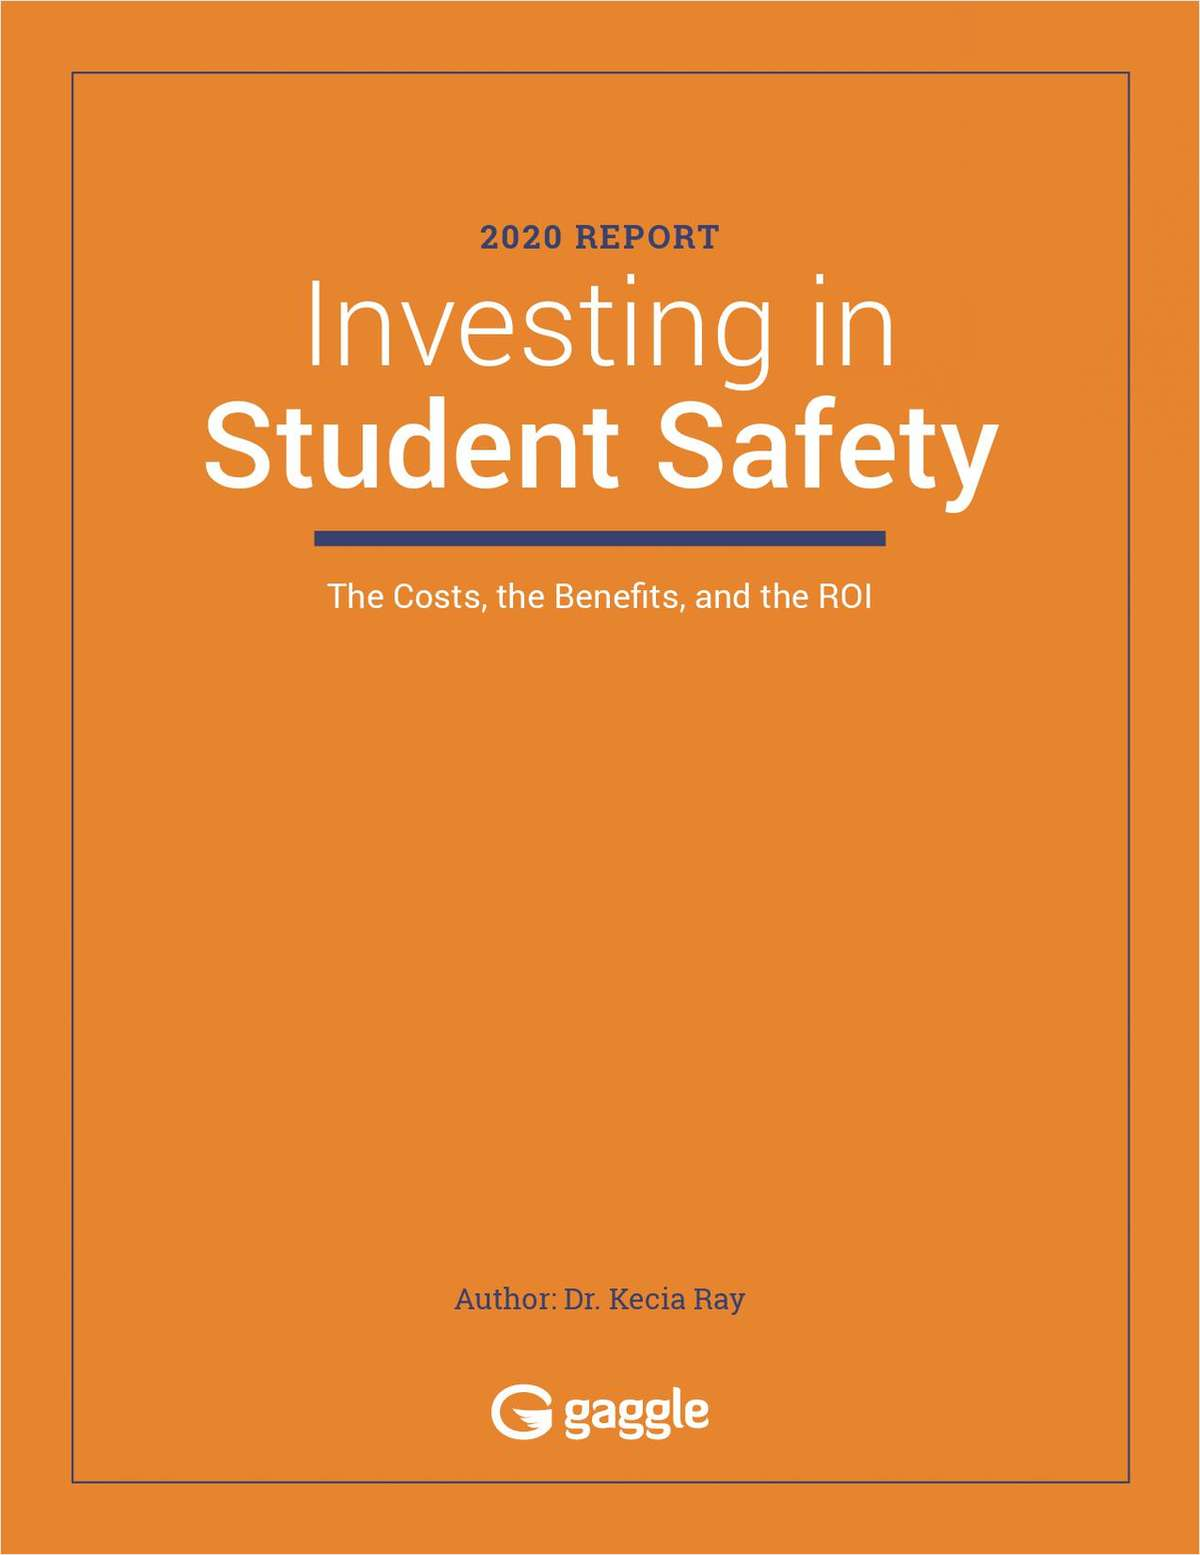 Investing in Student Safety